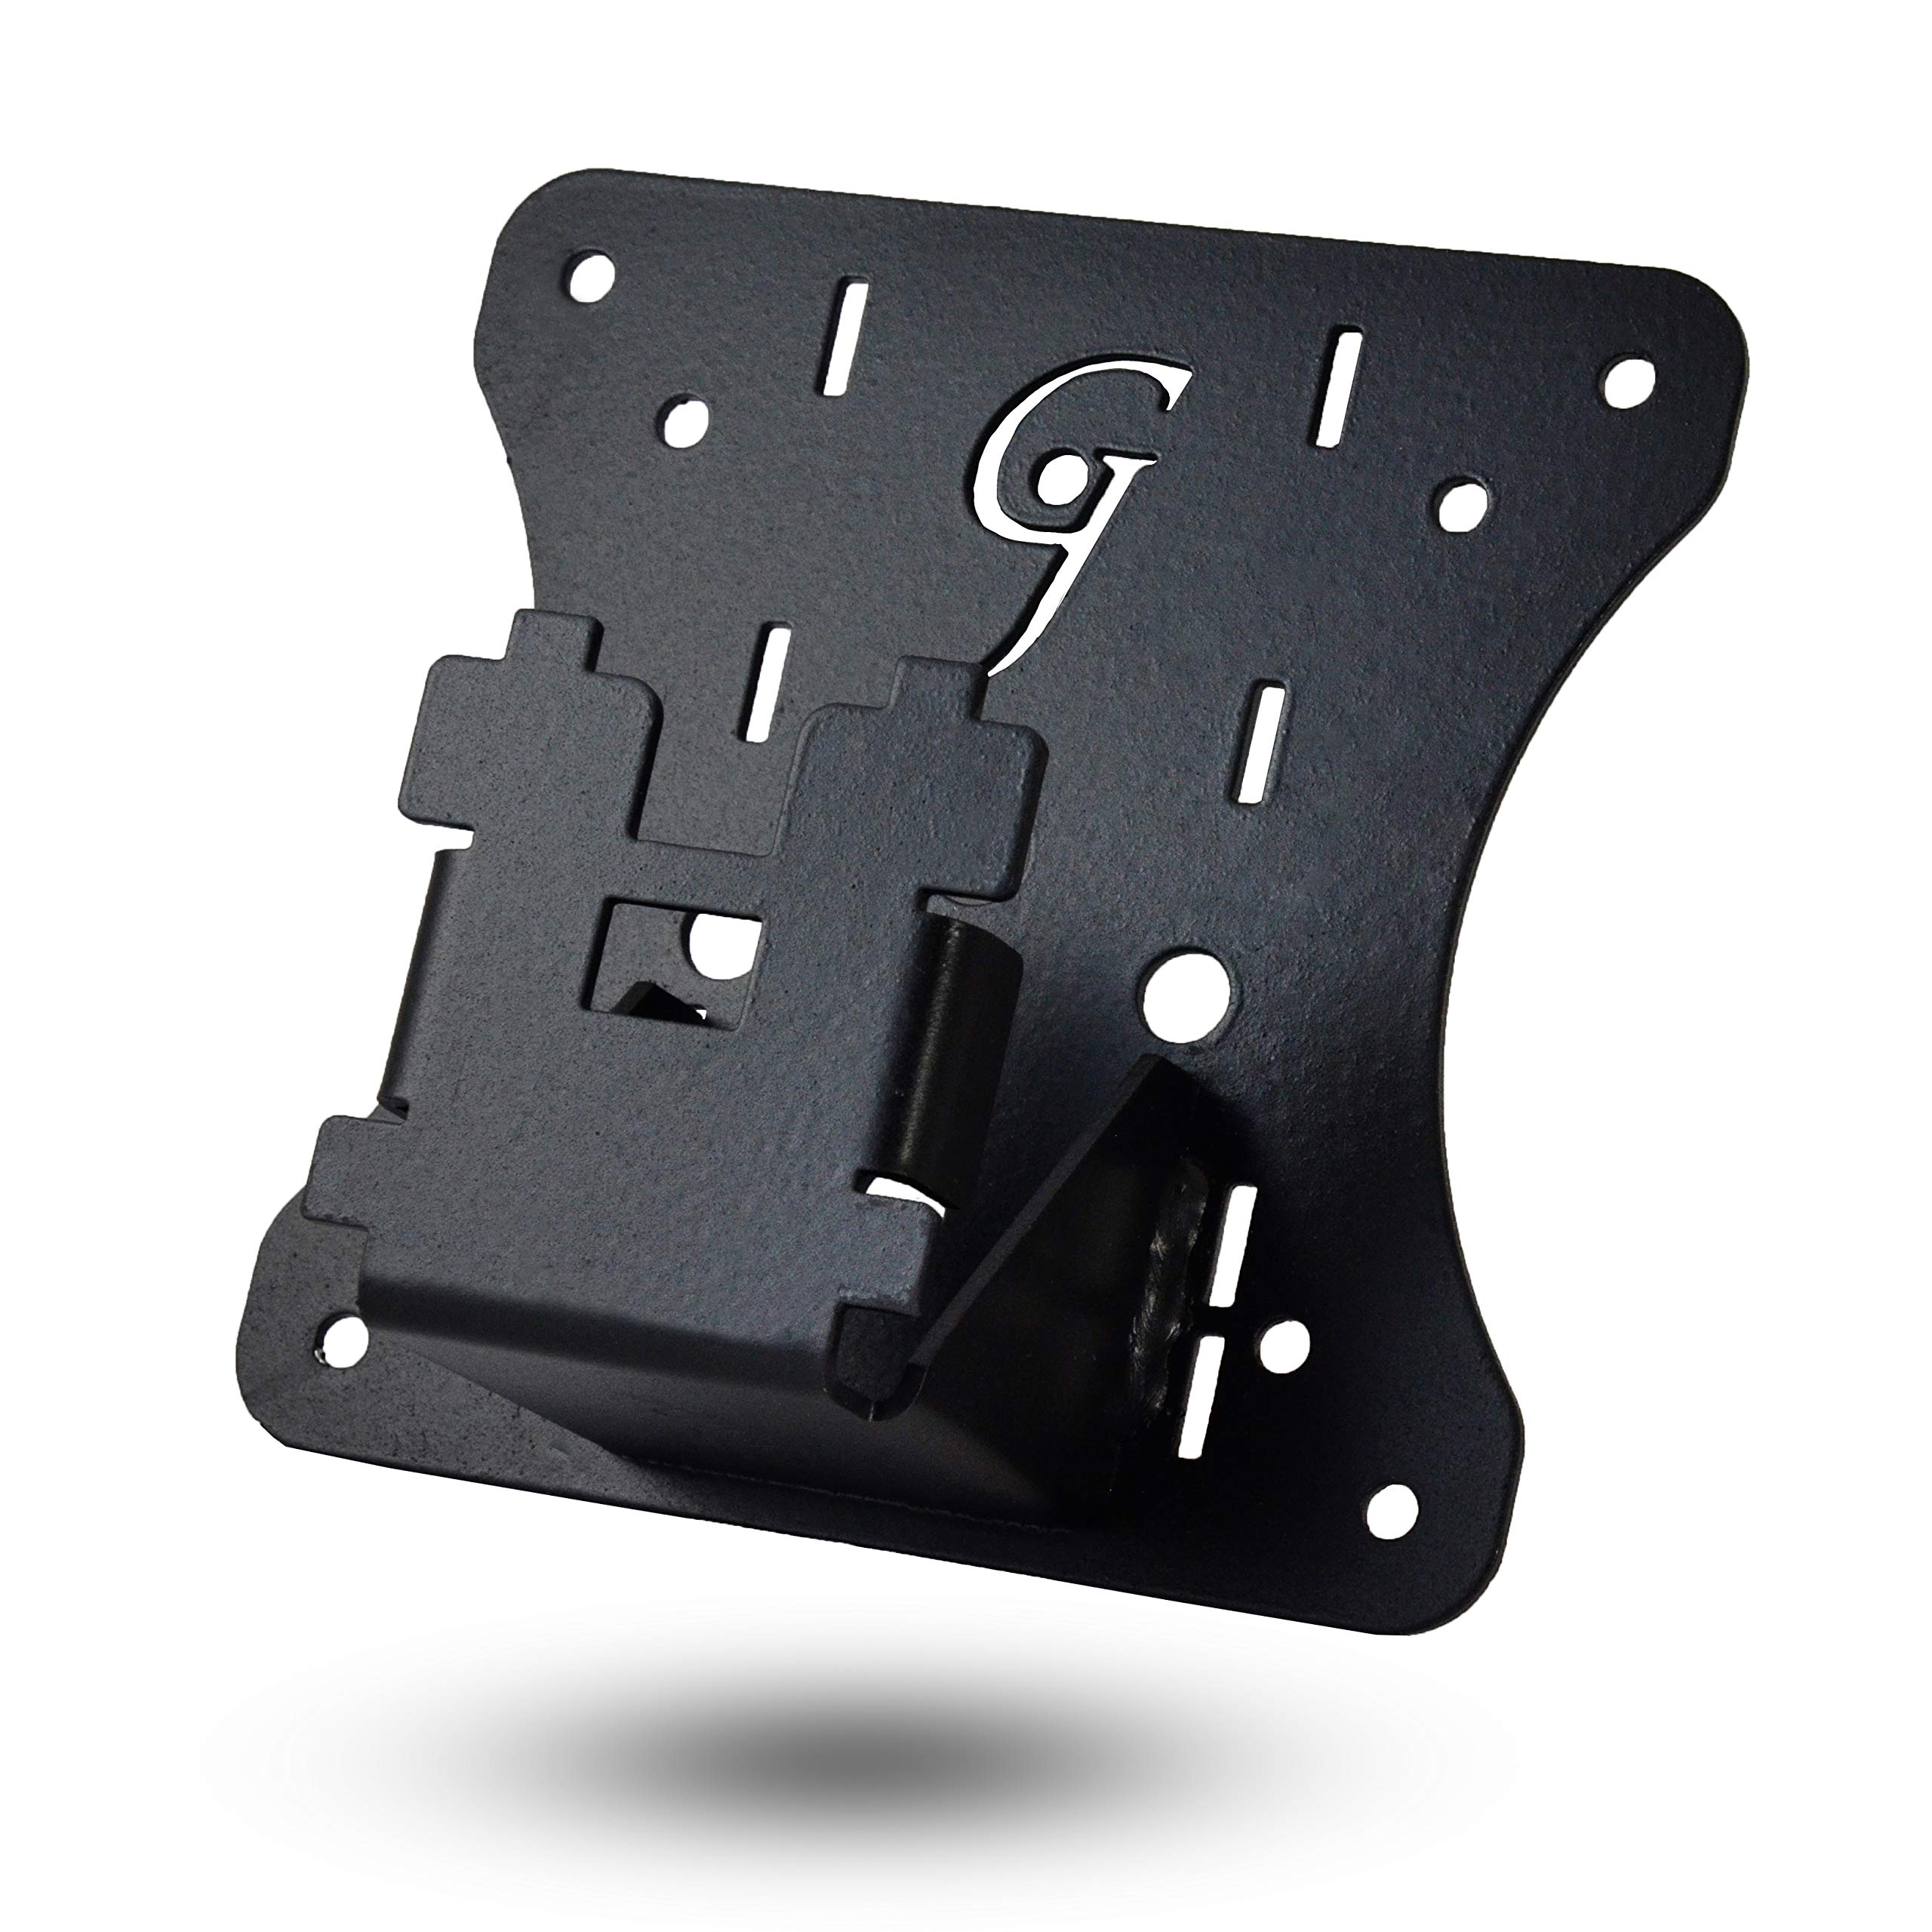 Gladiator Joe Monitor Arm / Mount VESA Bracket Adapter Wall Mount Compatible with Dell SE2717H, SE2717HX, SE2717HR - Gladiator Joe - 100% Made in North America